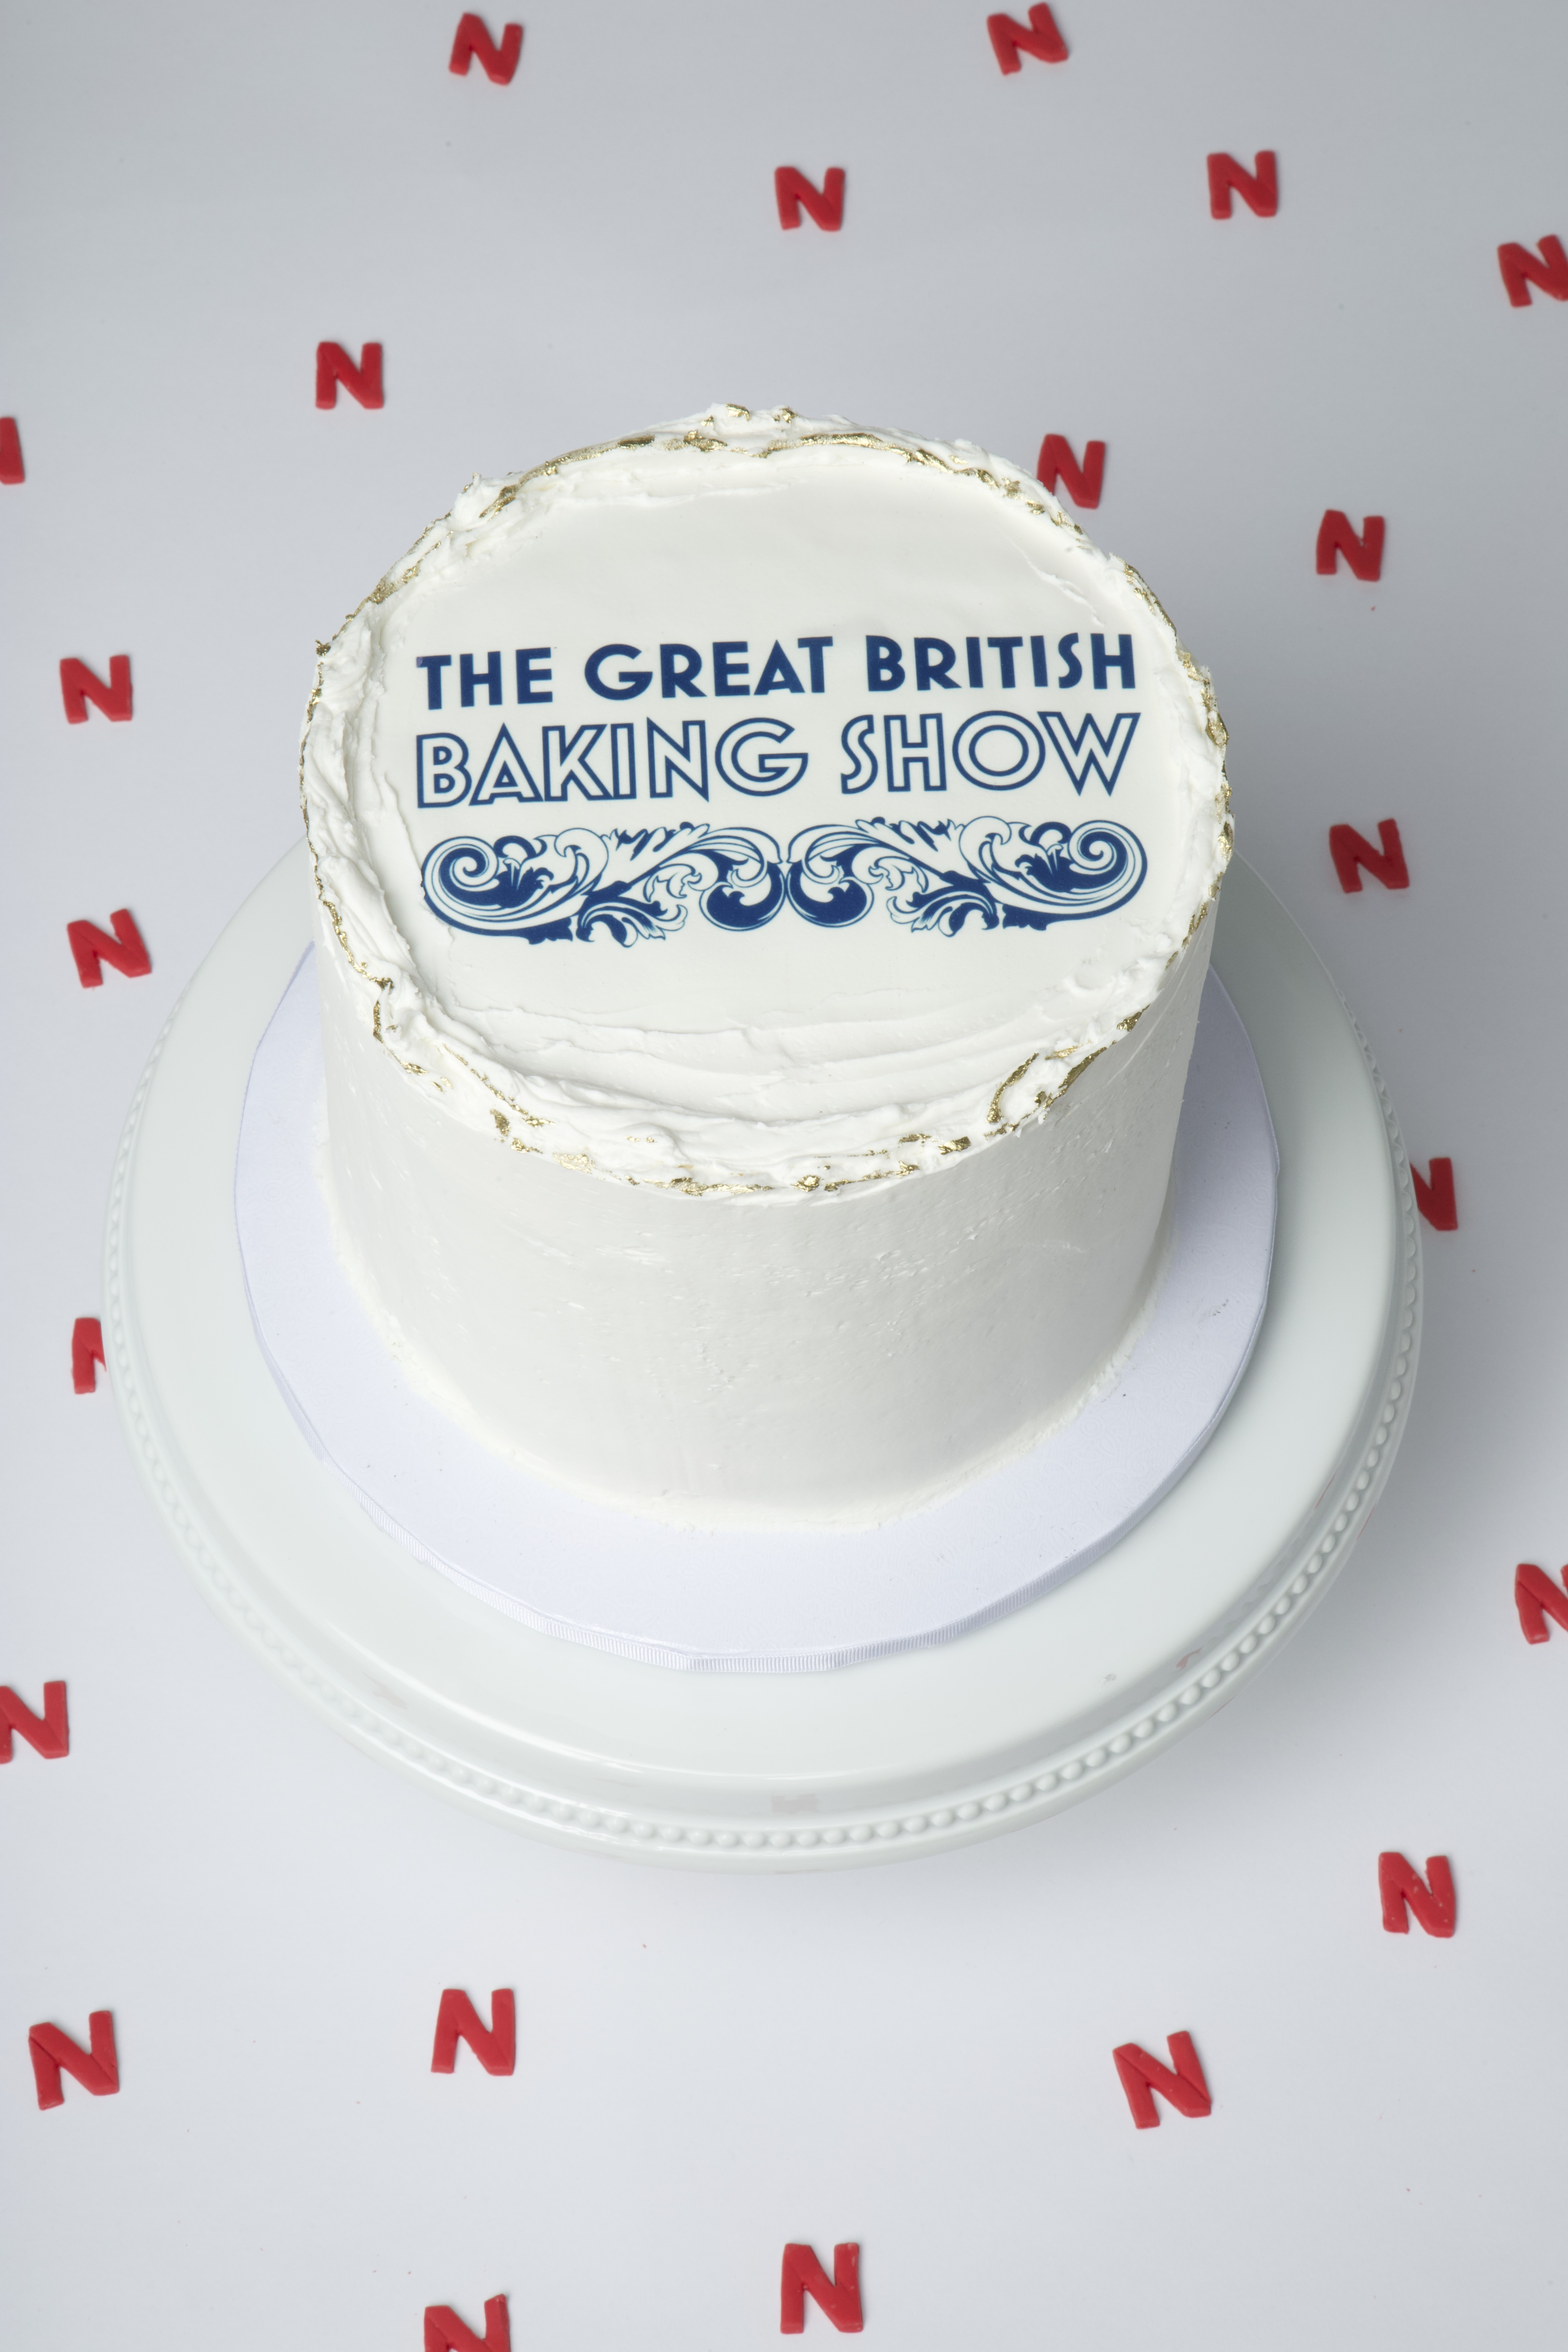 A cake decorated with the great british baking show logo